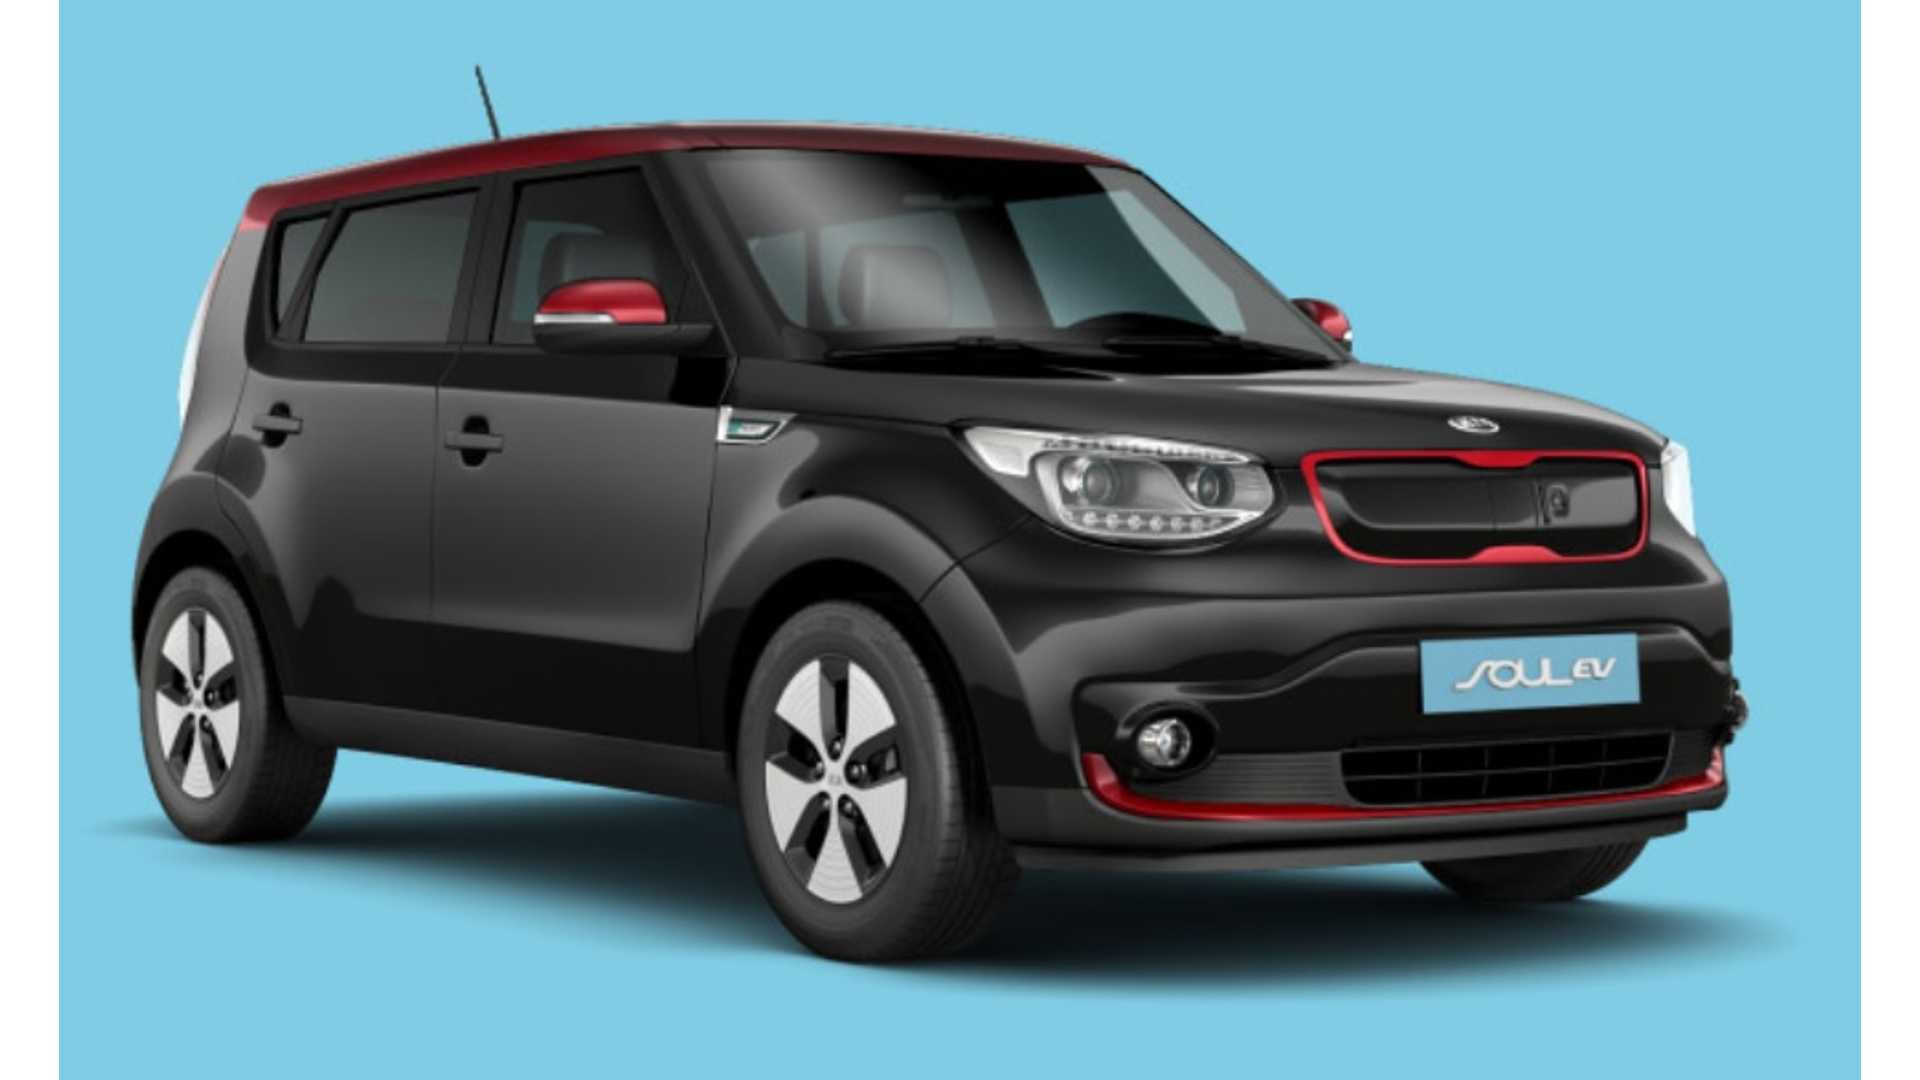 Kia Soul Ev >> Kia Soul Ev Coming To Us In Fall With Snazzy New Color Choice